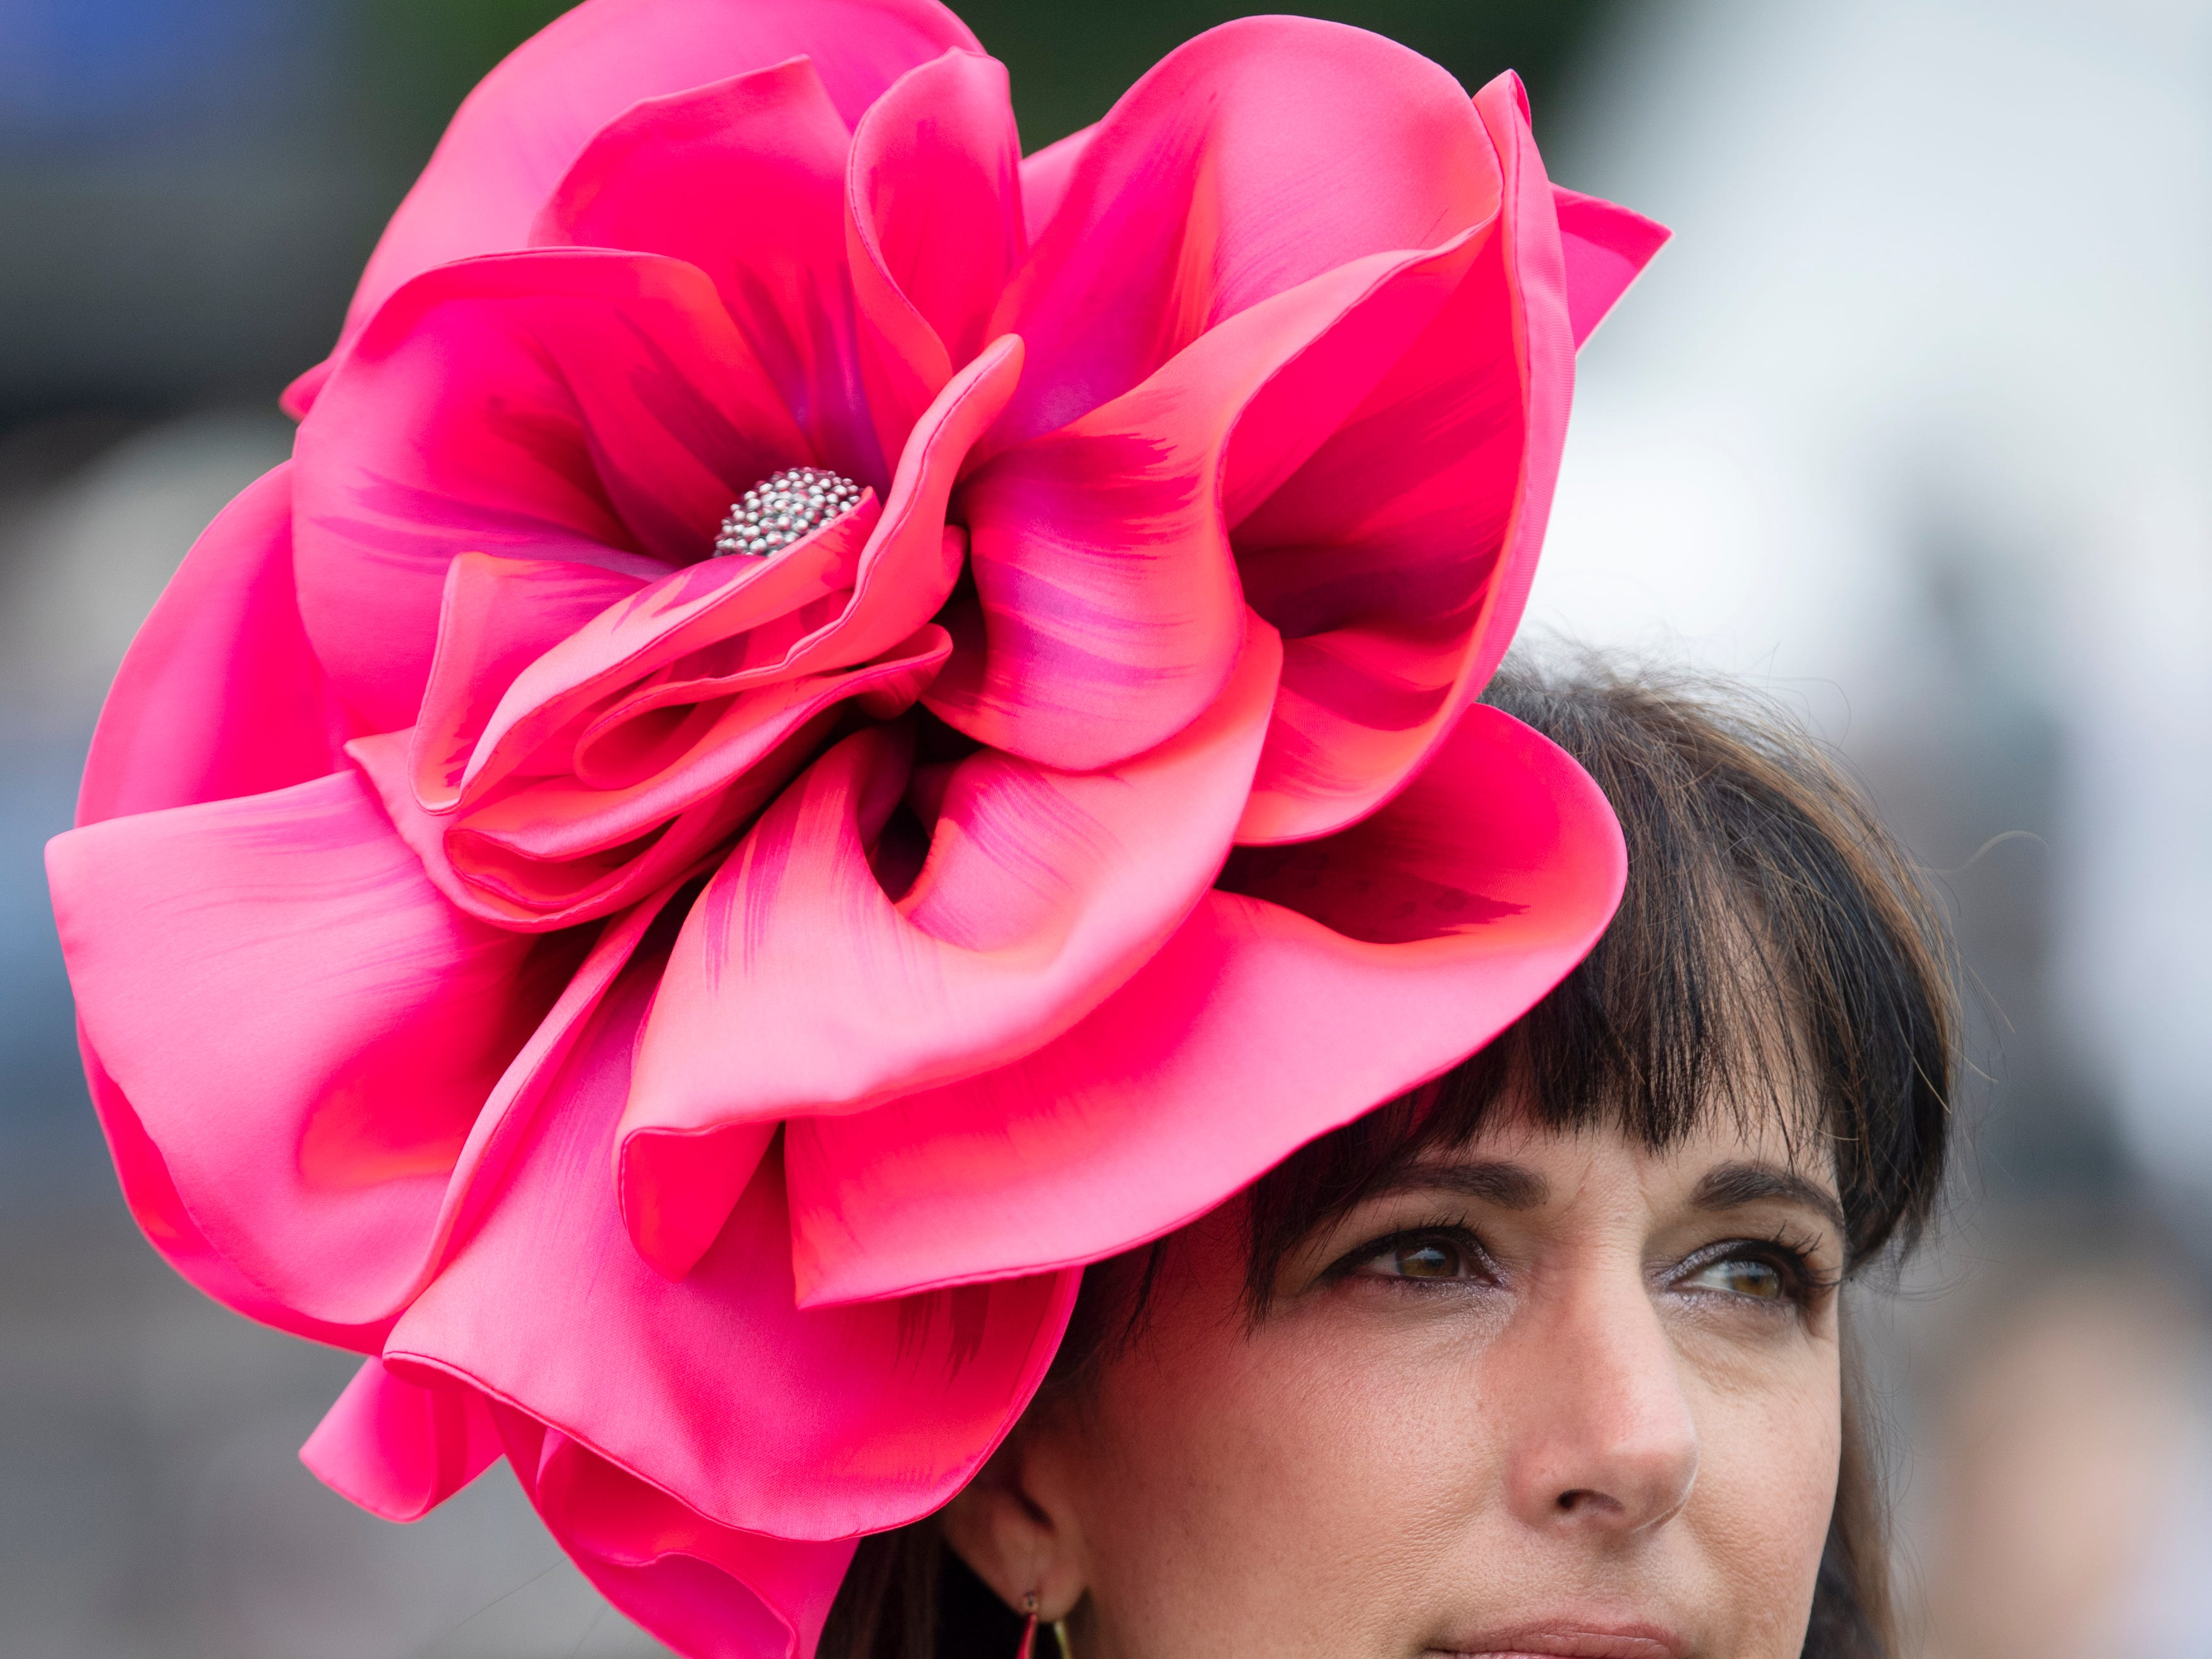 Missy Ryan at the 78th Iroquois Steeplechase at Percy Warner Park in Nashville on Saturday, May 11, 2019.